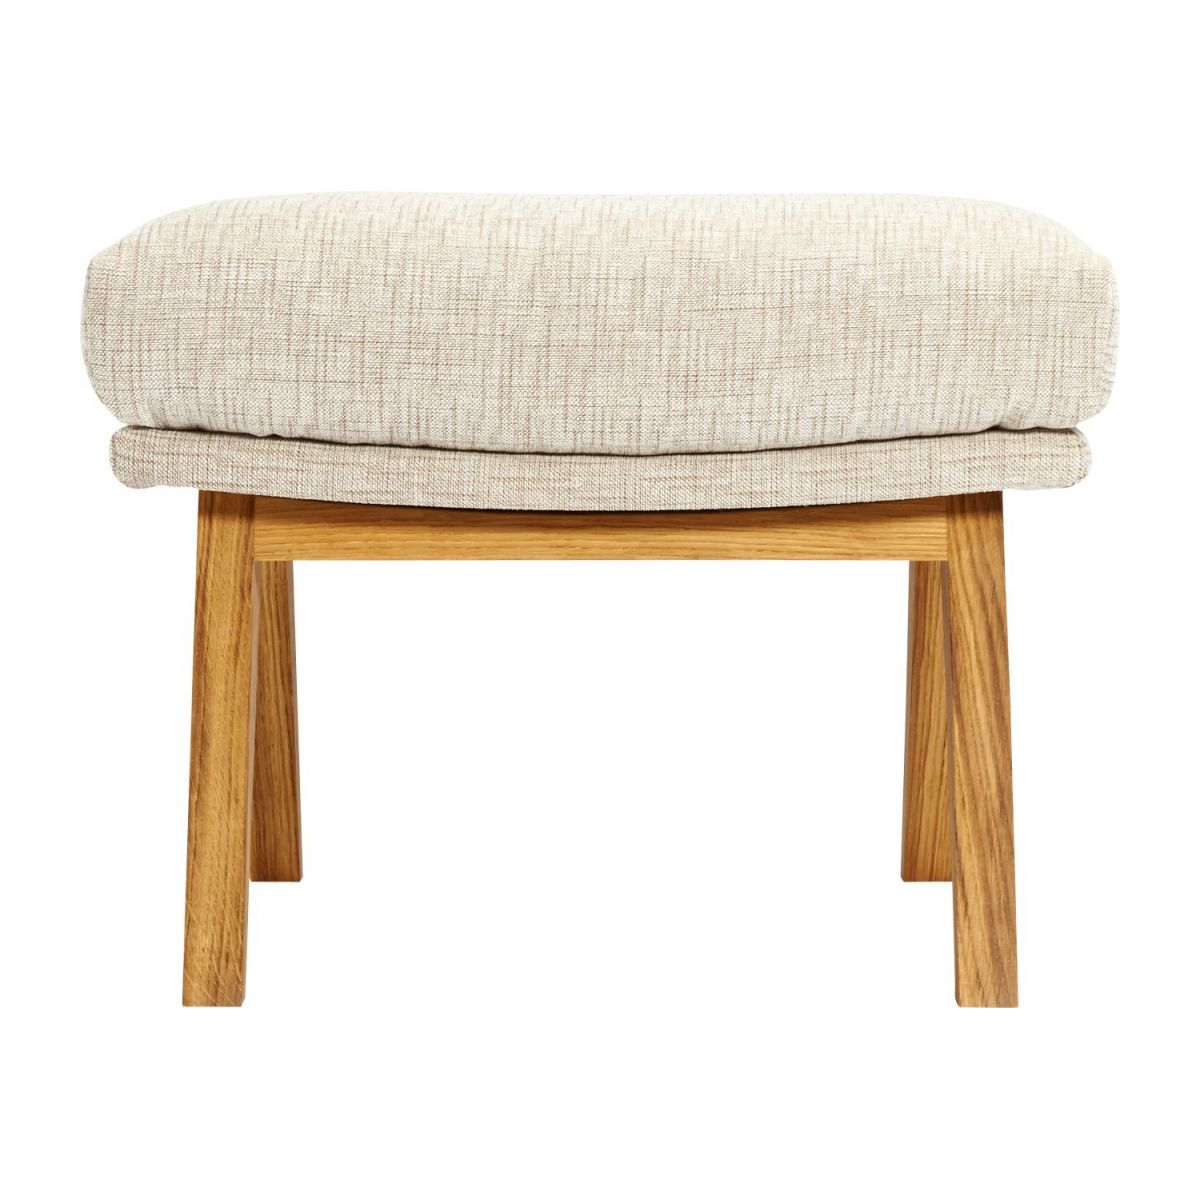 Footstool in Ancio fabric, nature with oak legs n°3